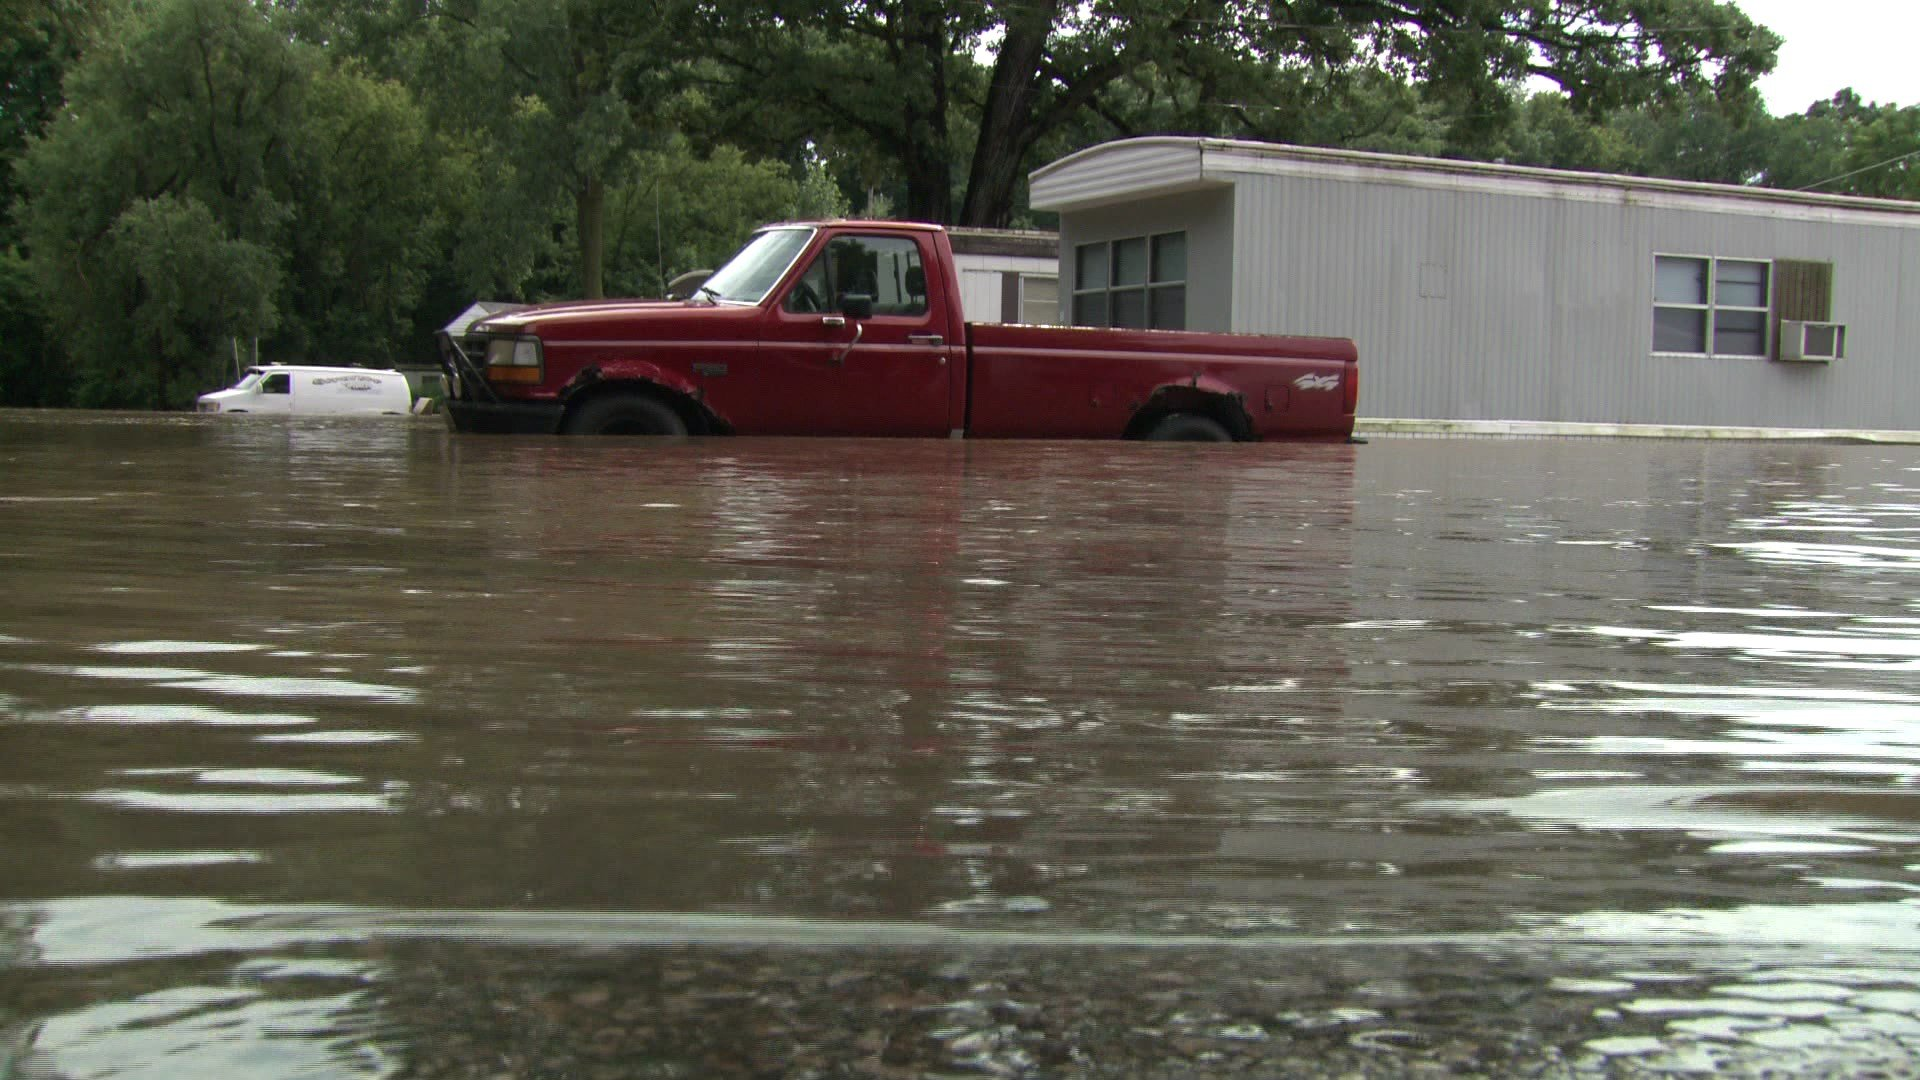 MILWAUKEE AP Flooding Has Forced The Evacuation Of A Mobile Home Park In Southeastern Wisconsin Kenosha County Sheriffs Department Says Crews